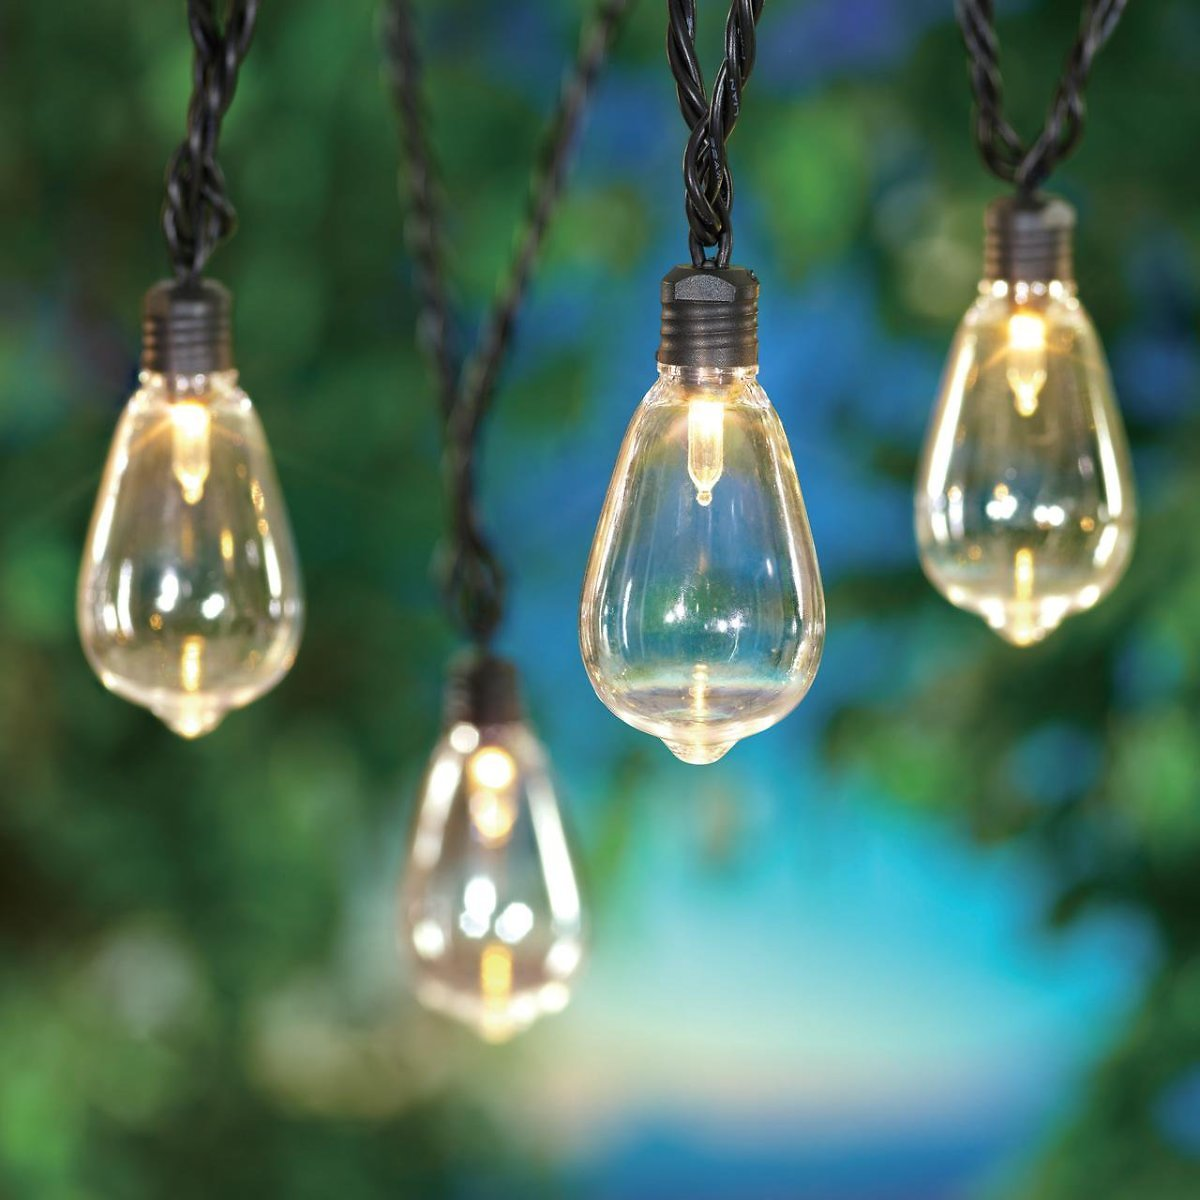 Mainstays 35-Count Outdoor LED Edison Bulb String Lights, with Black Wire and AC Plug-in